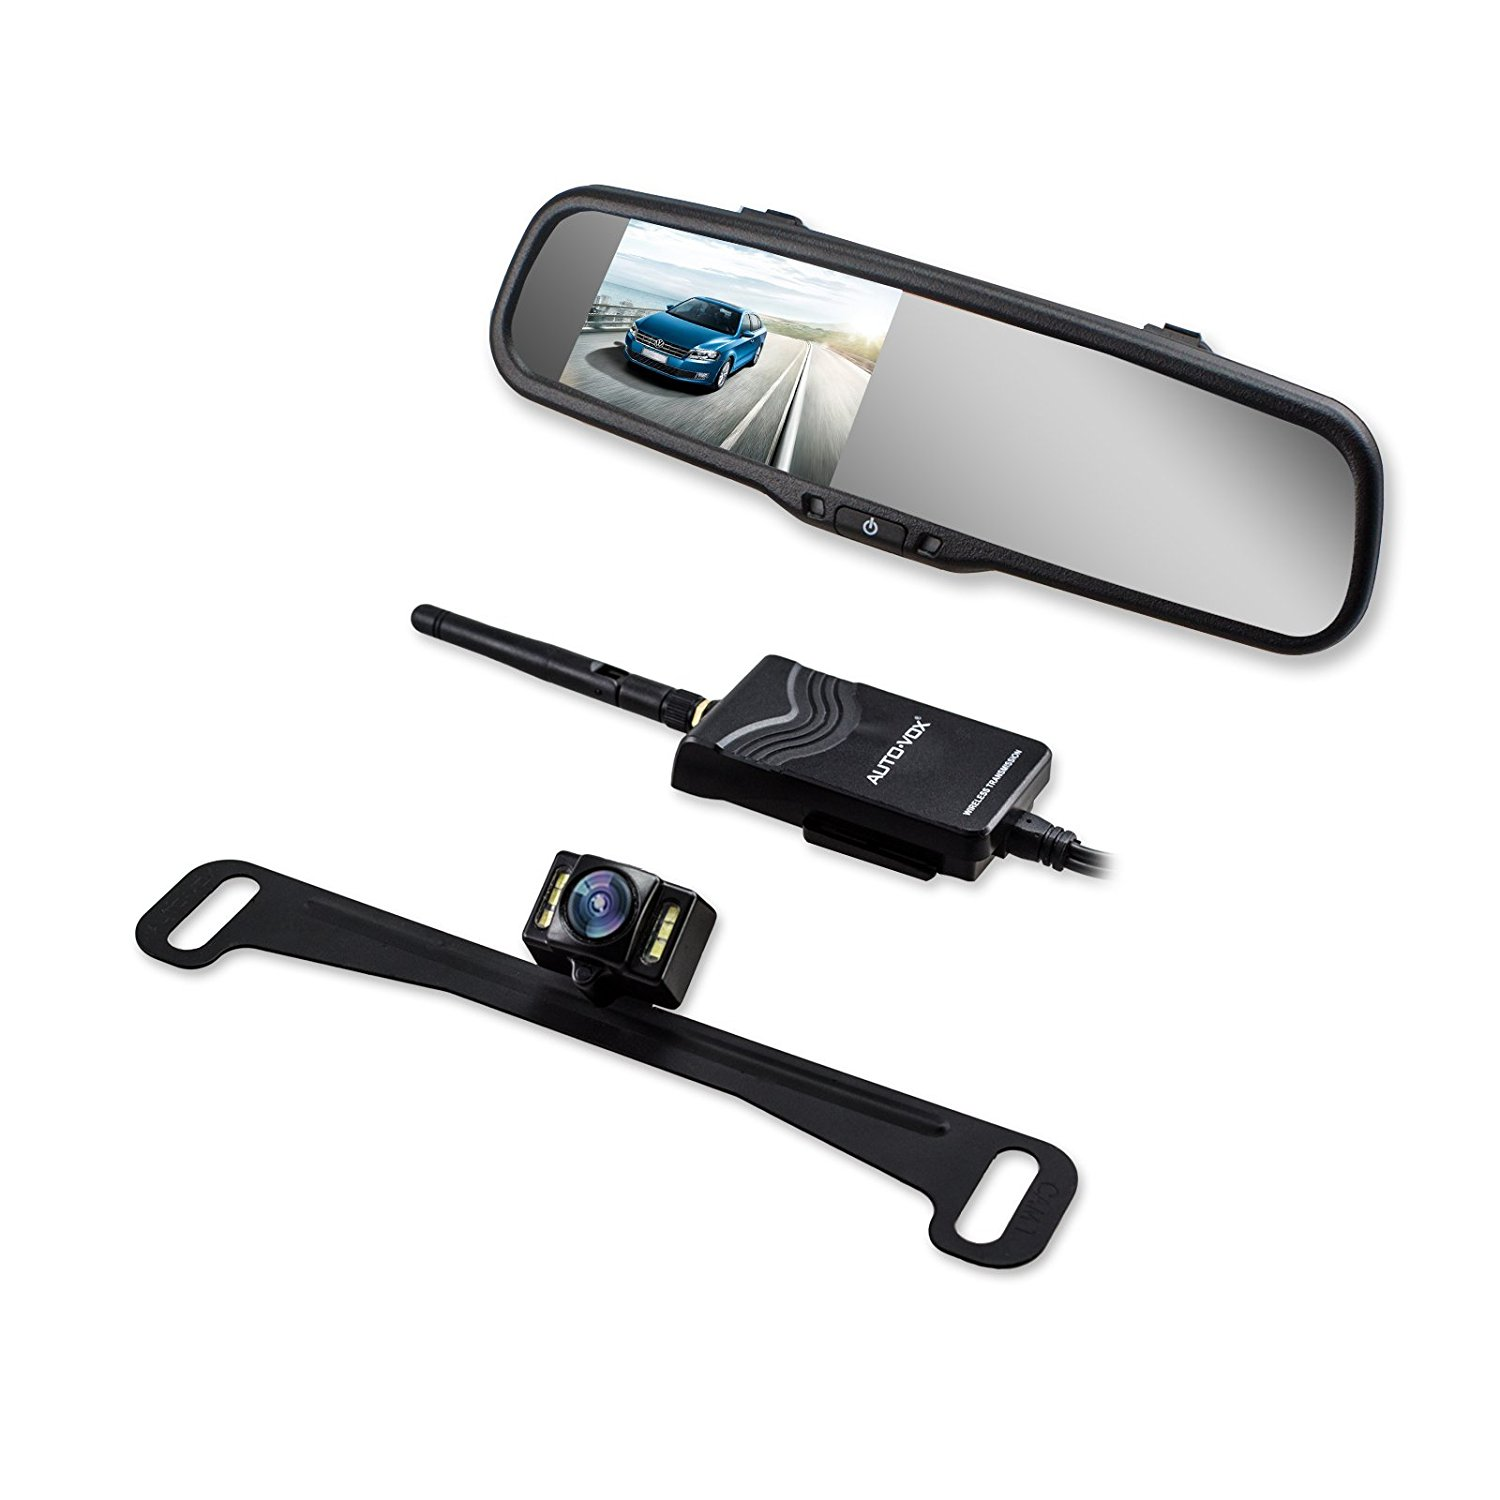 AUTOVOX 4.3 Inch Car Rear View Mirror Auto Reverse On Parking Monitor +  Wireless Backup Camera LED Night Vision License Plate Camera Car Charger Easy install